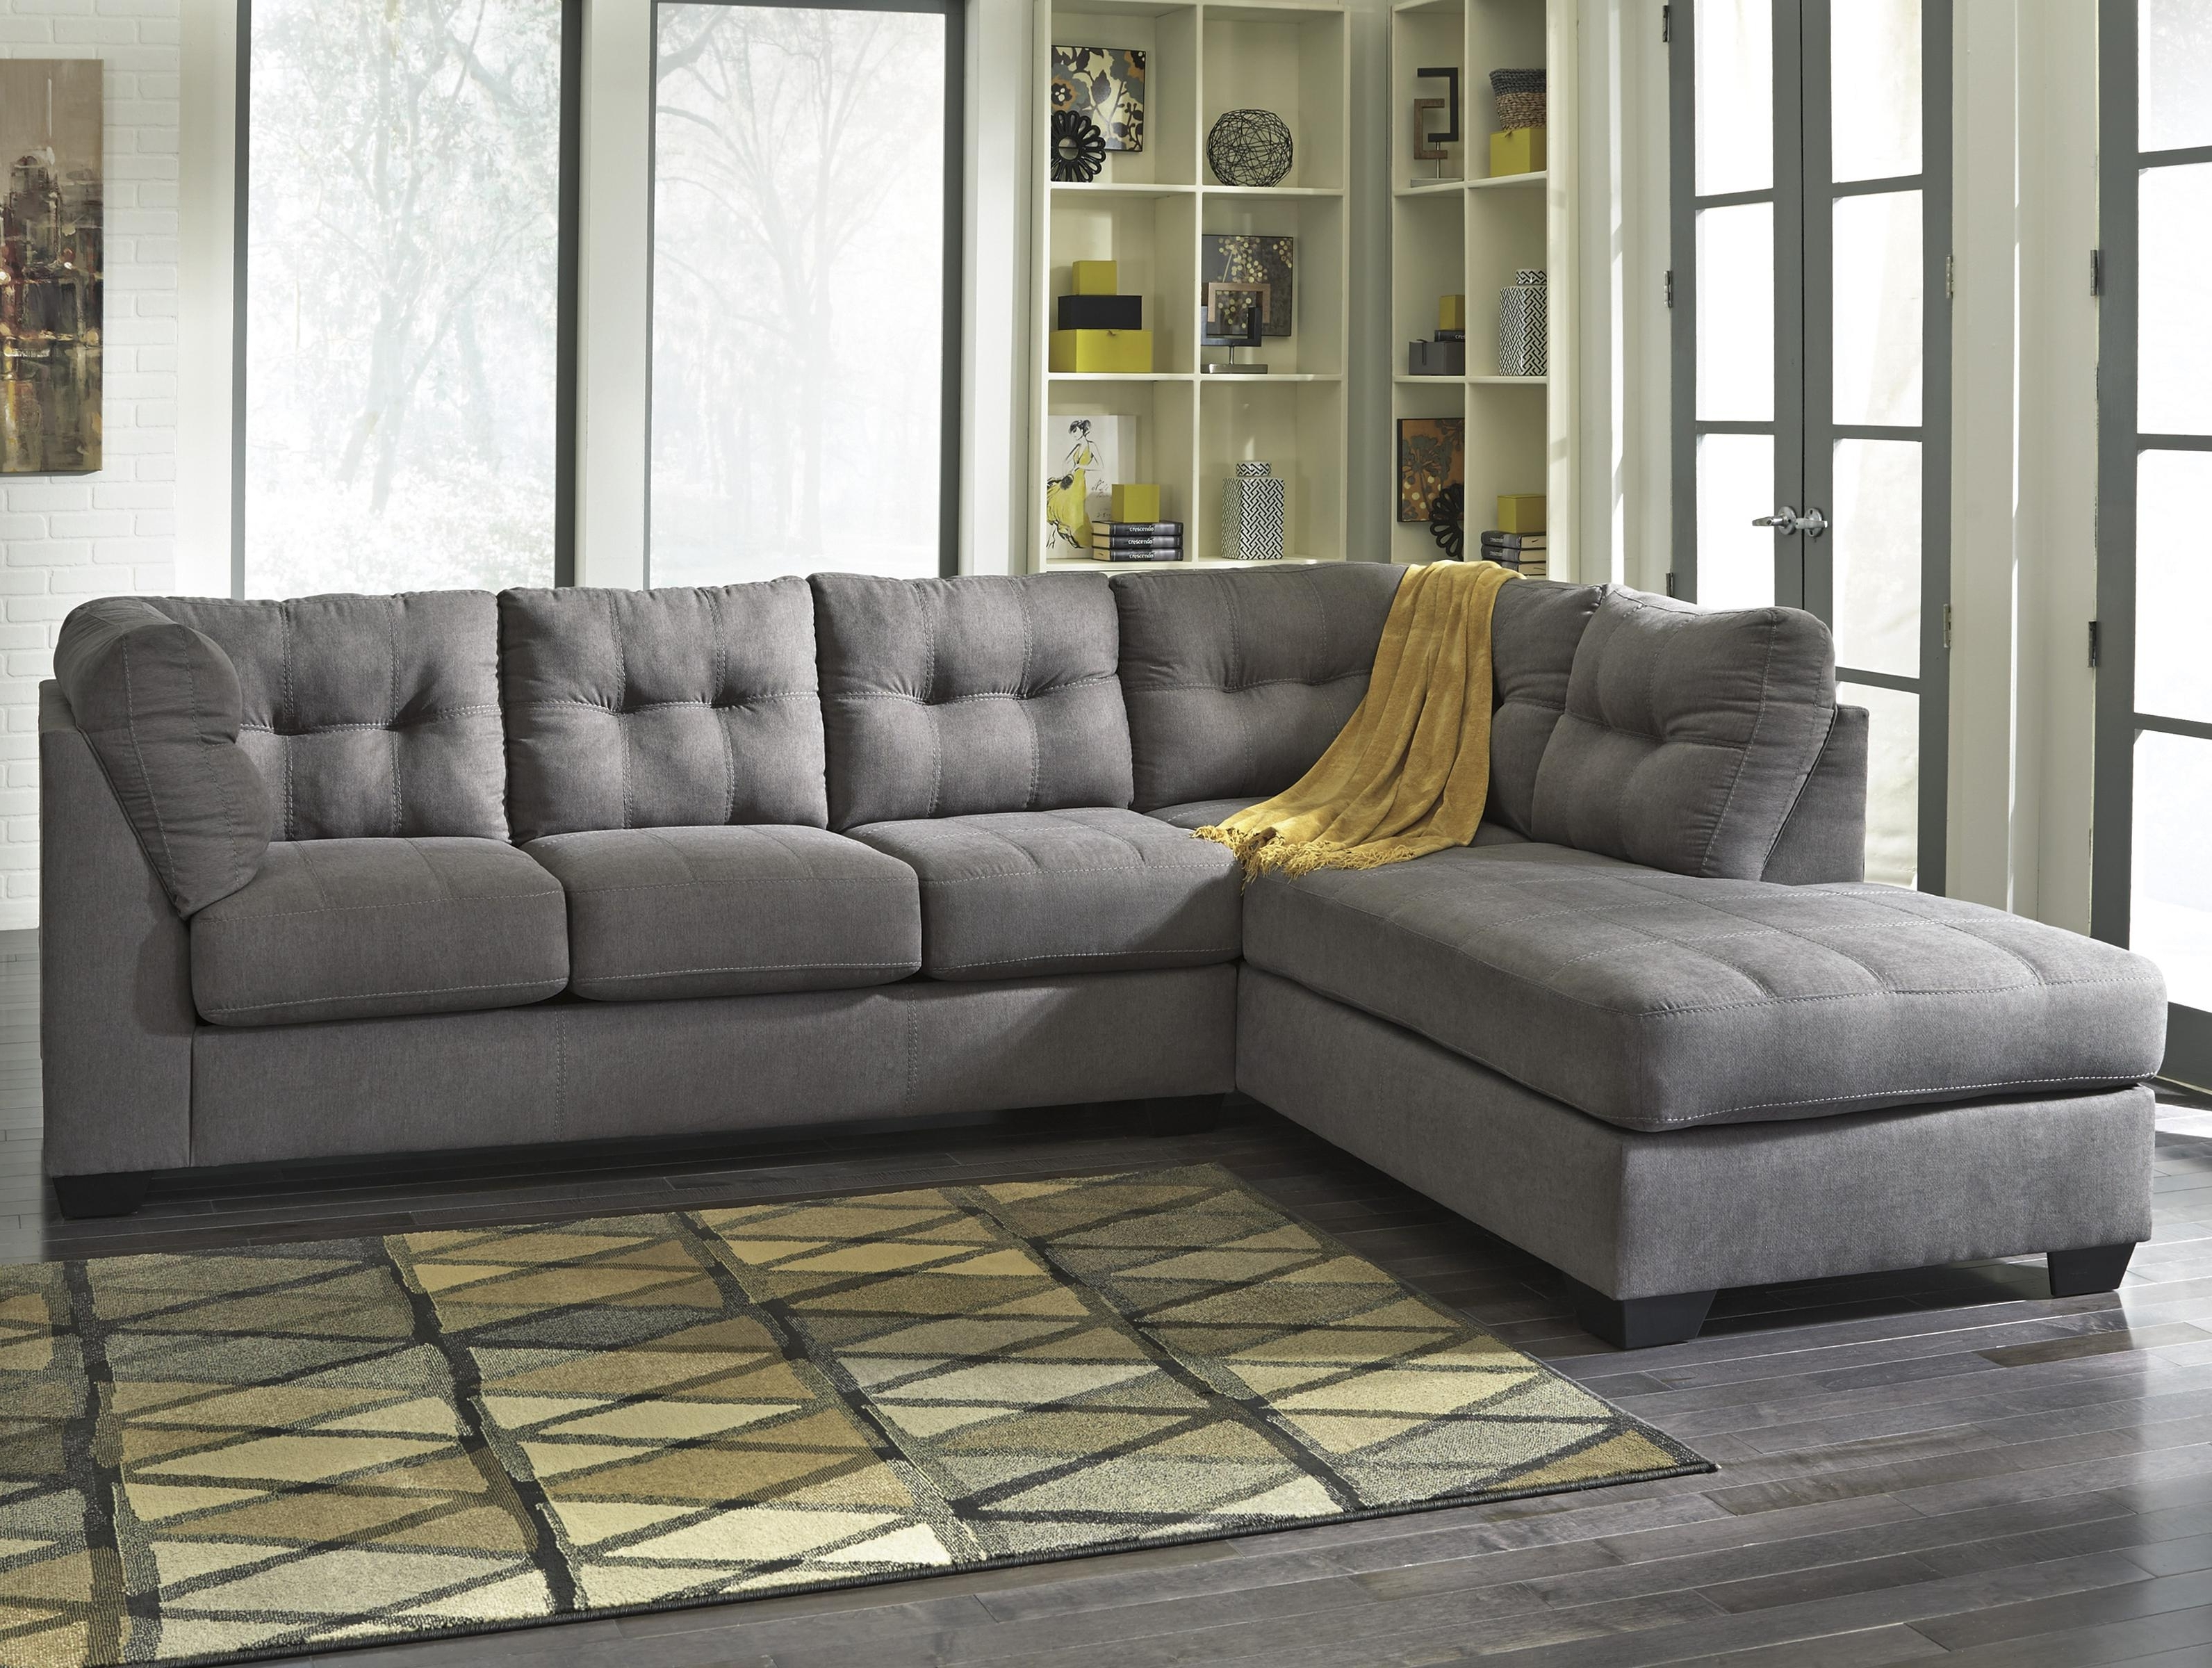 Most Recent Benchcraftashley Maier – Charcoal 2 Piece Sectional With Left Regarding 2 Piece Sectionals With Chaise (View 3 of 15)